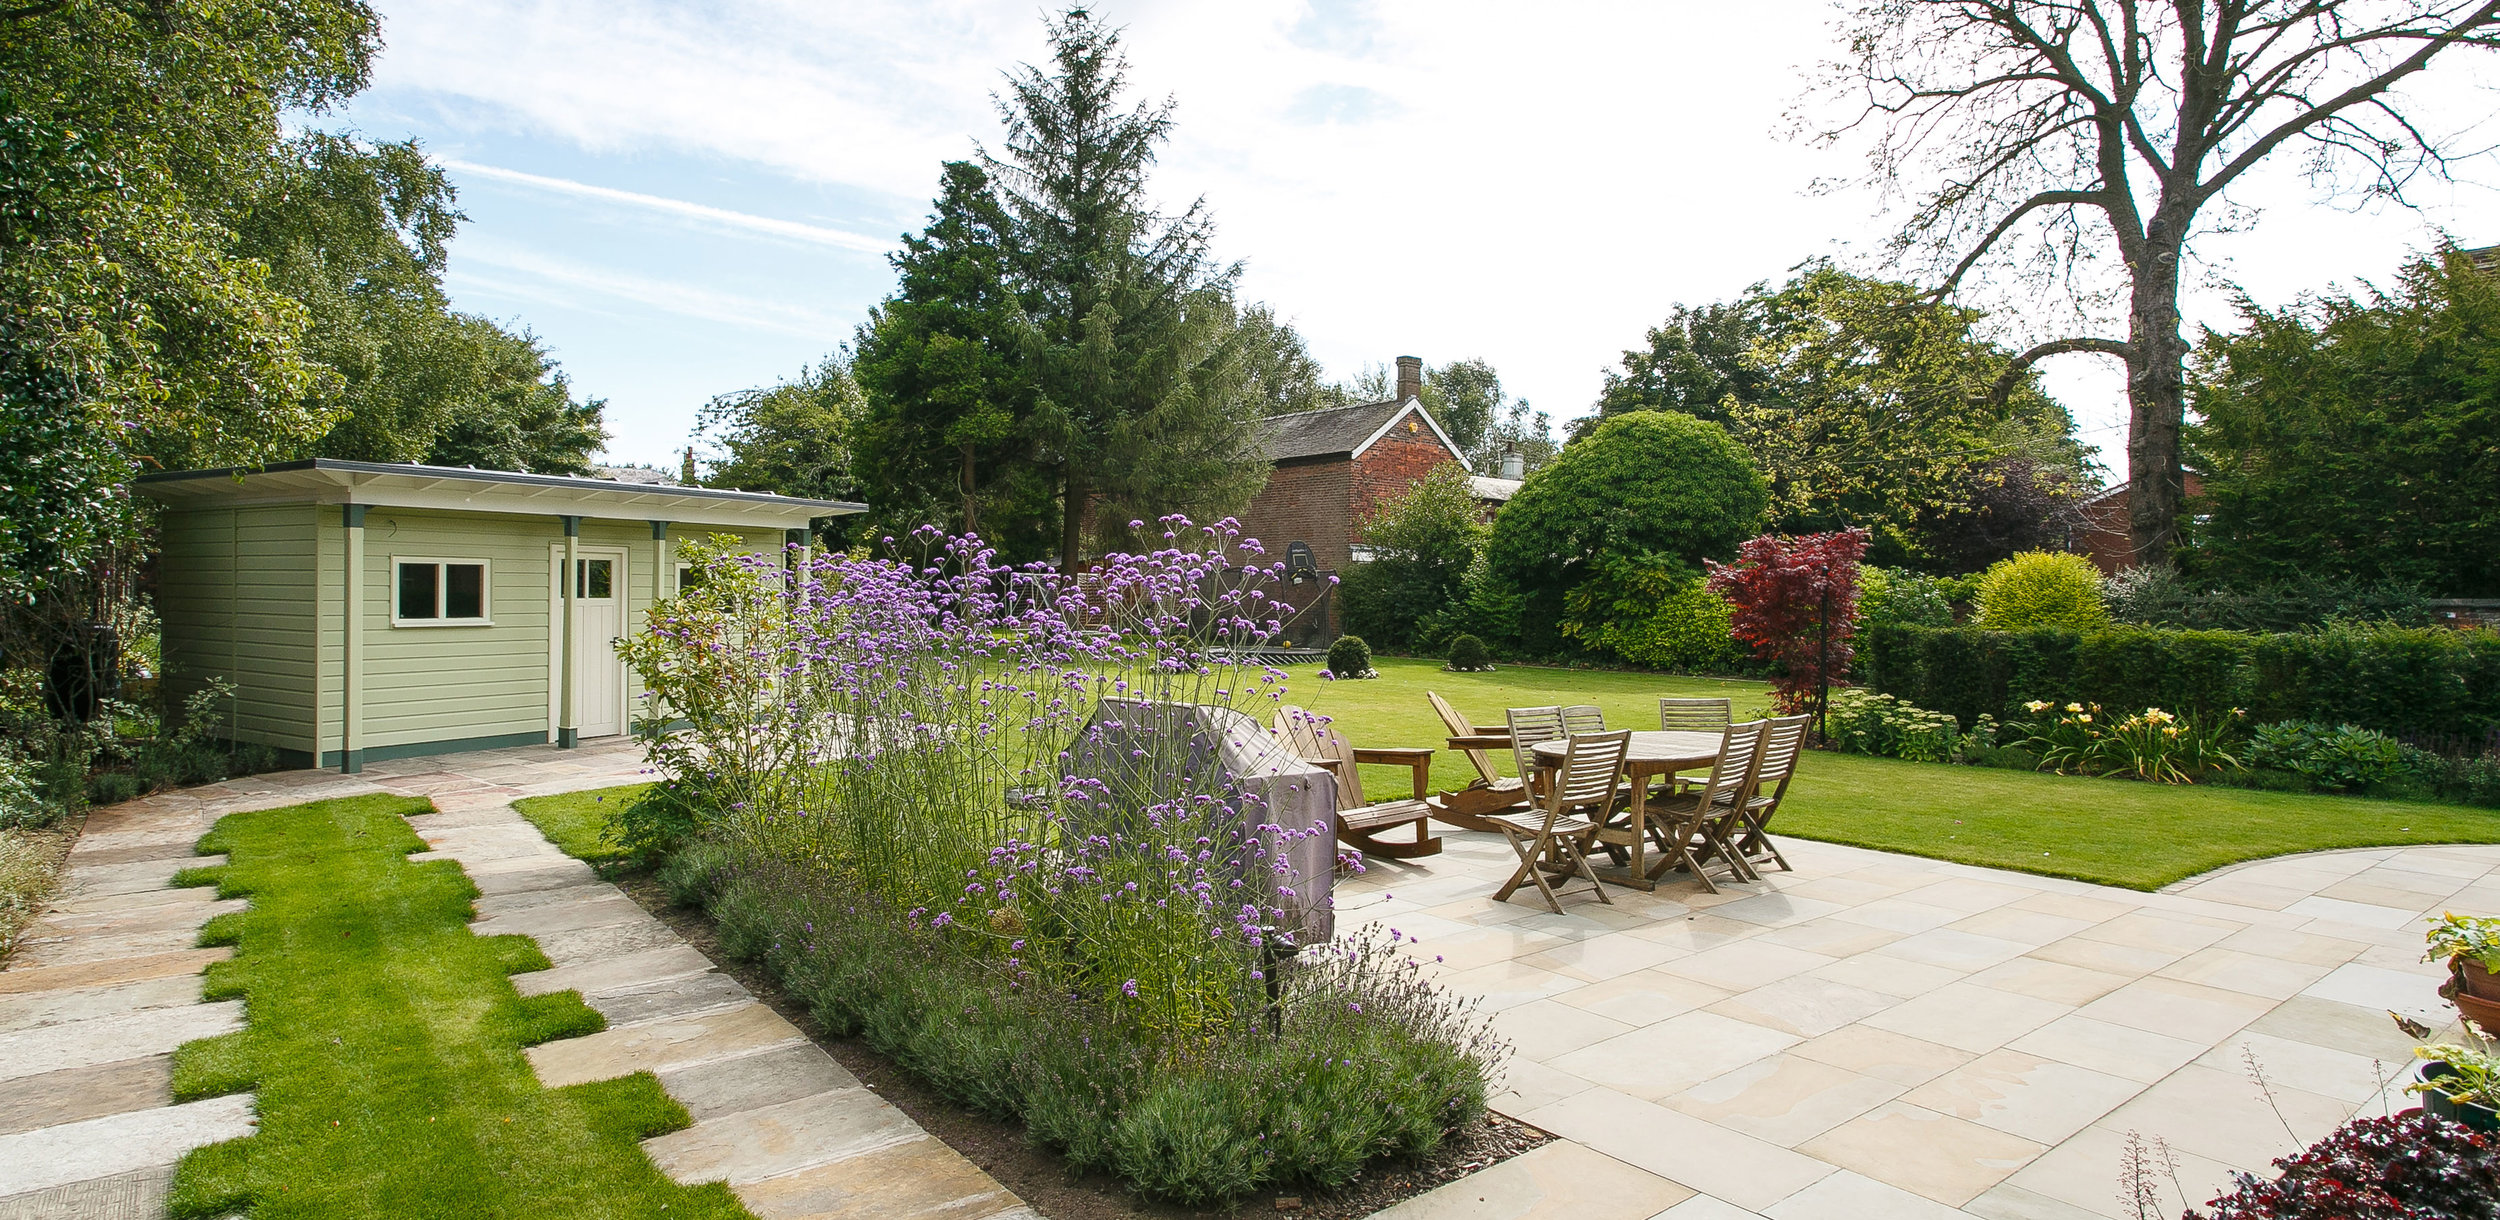 GARDENS - Country Estates  |  Traditional  |  Contemporary  |  Roof Gardens  |  Garden Elements  |   Lighting